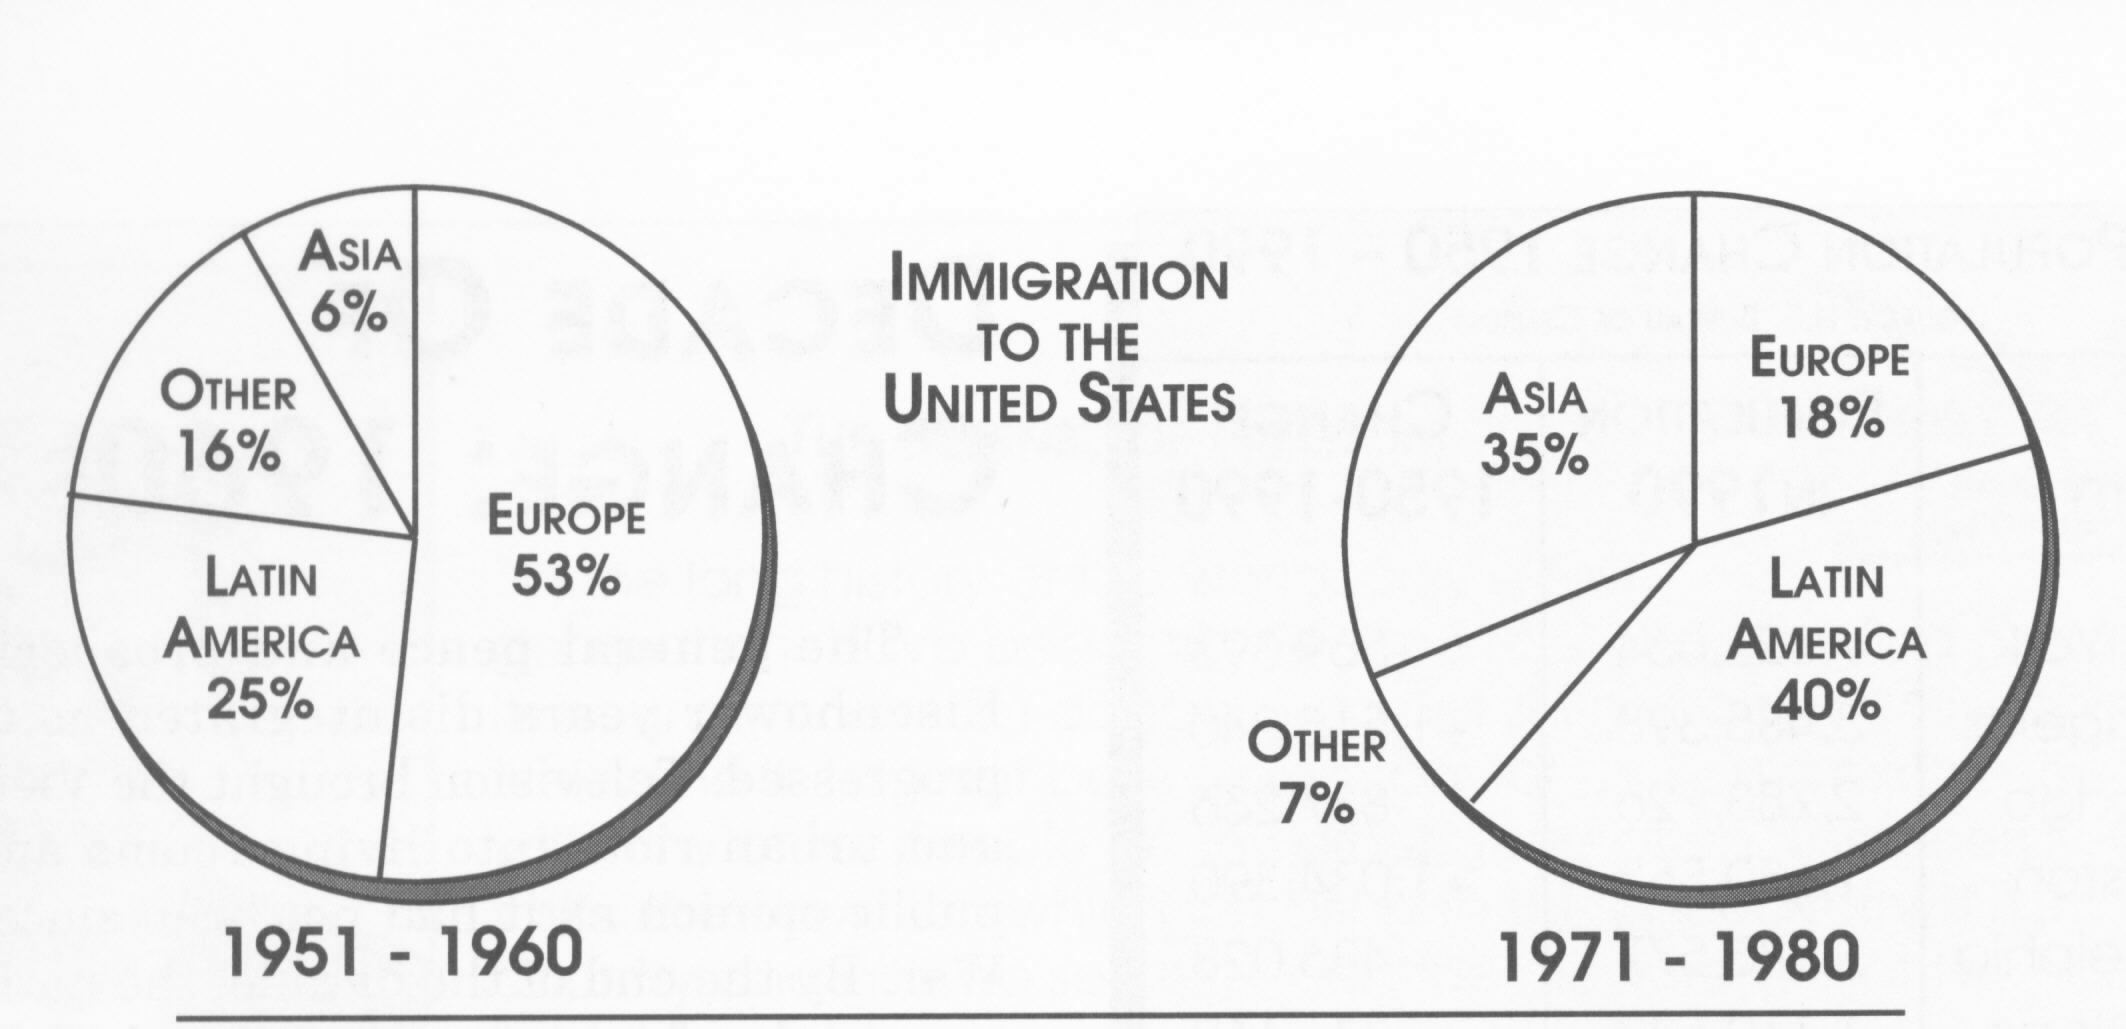 Immigration pie chart image collections free any chart examples immigration pie chart gallery free any chart examples immigration pie chart image collections free any chart nvjuhfo Image collections